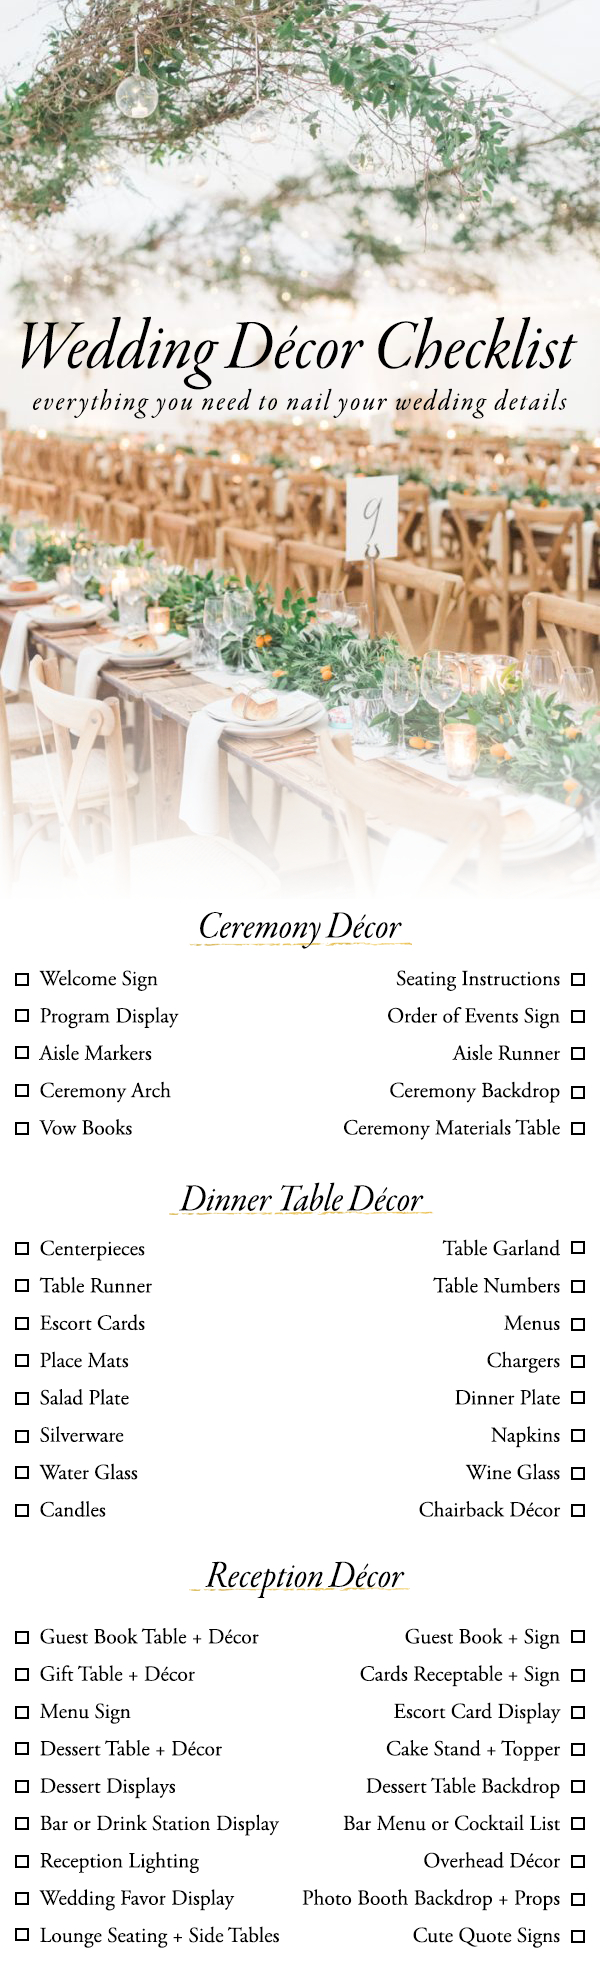 Use This Wedding Décor Checklist To Help You Nail Every Detail - Free Printable Wedding Decorations